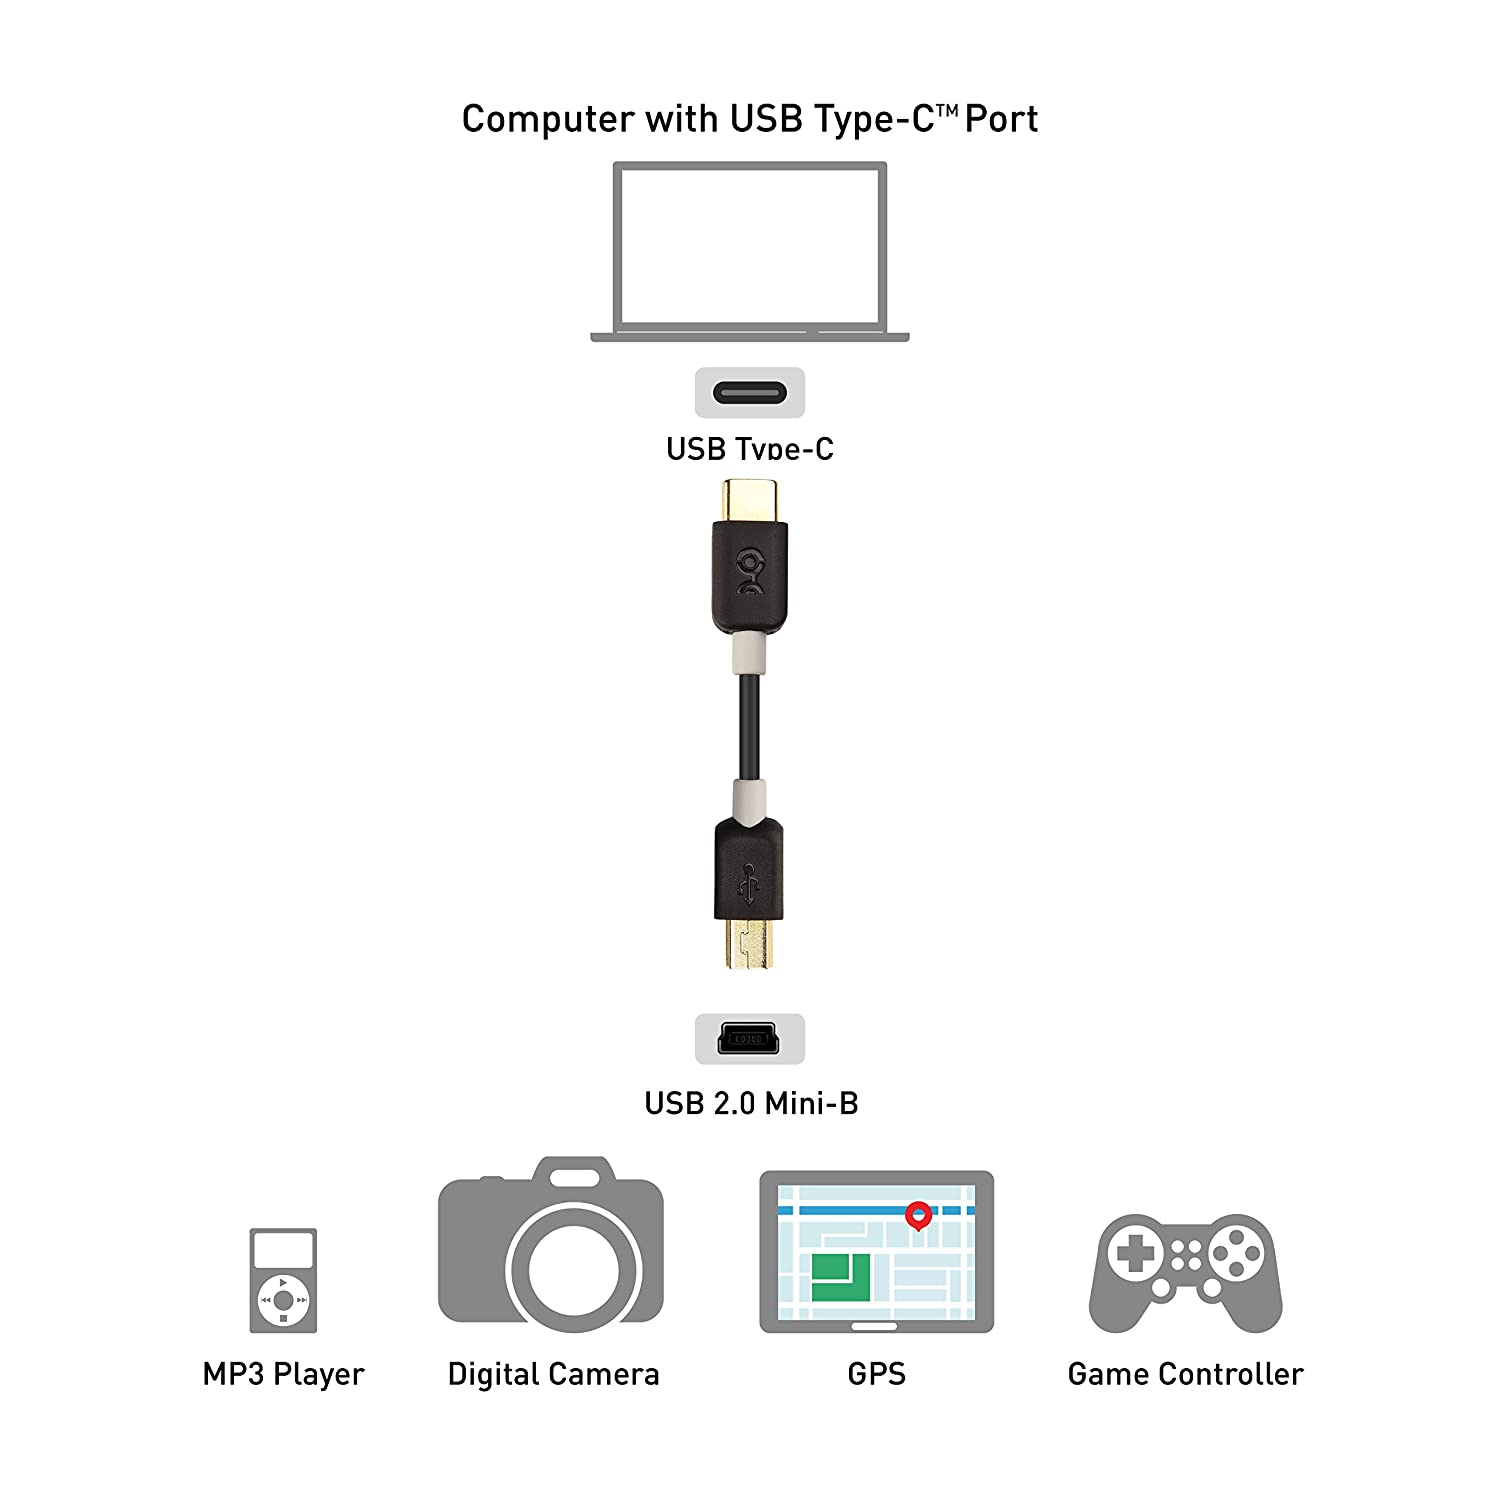 usb camera wiring diagram usb image wiring diagram usb 2 0 wire diagram usb image wiring diagram on usb camera wiring diagram